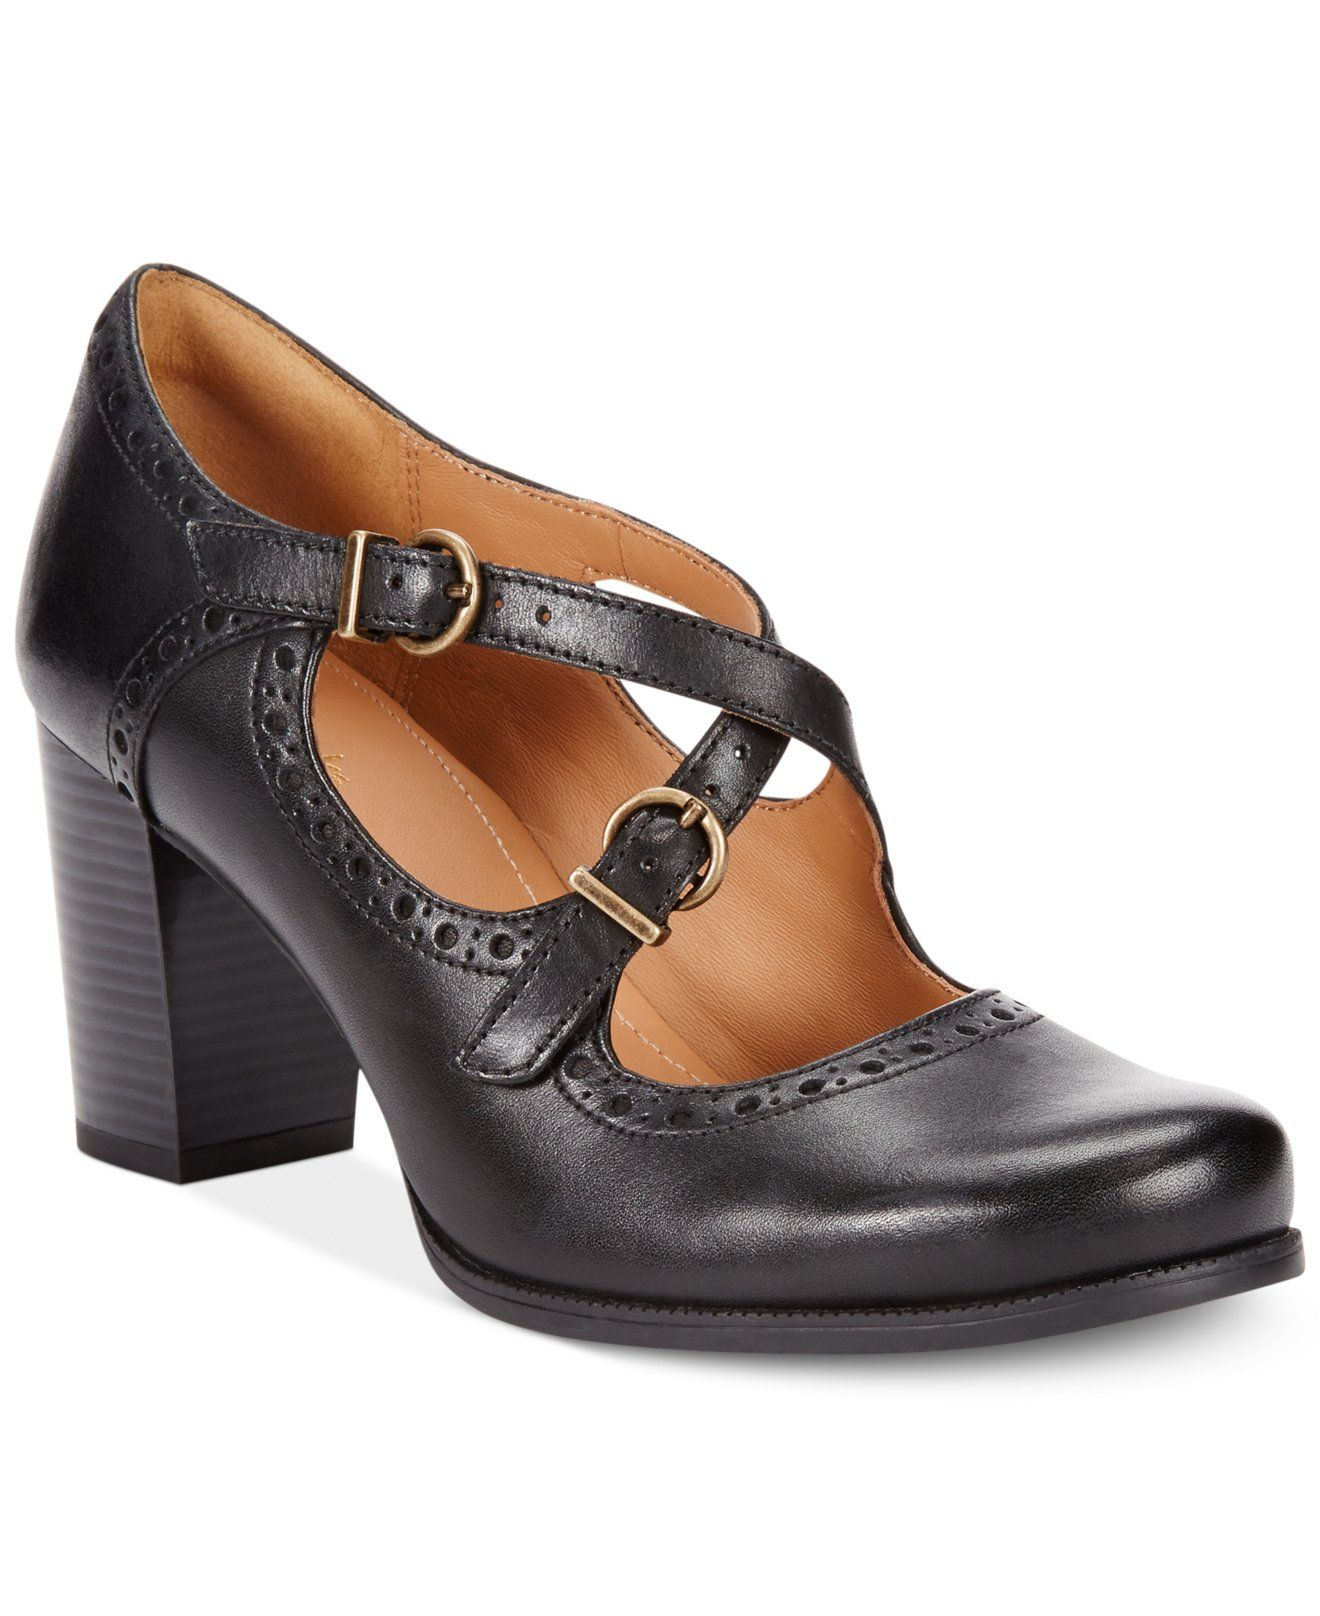 macy's clarks ladies shoes